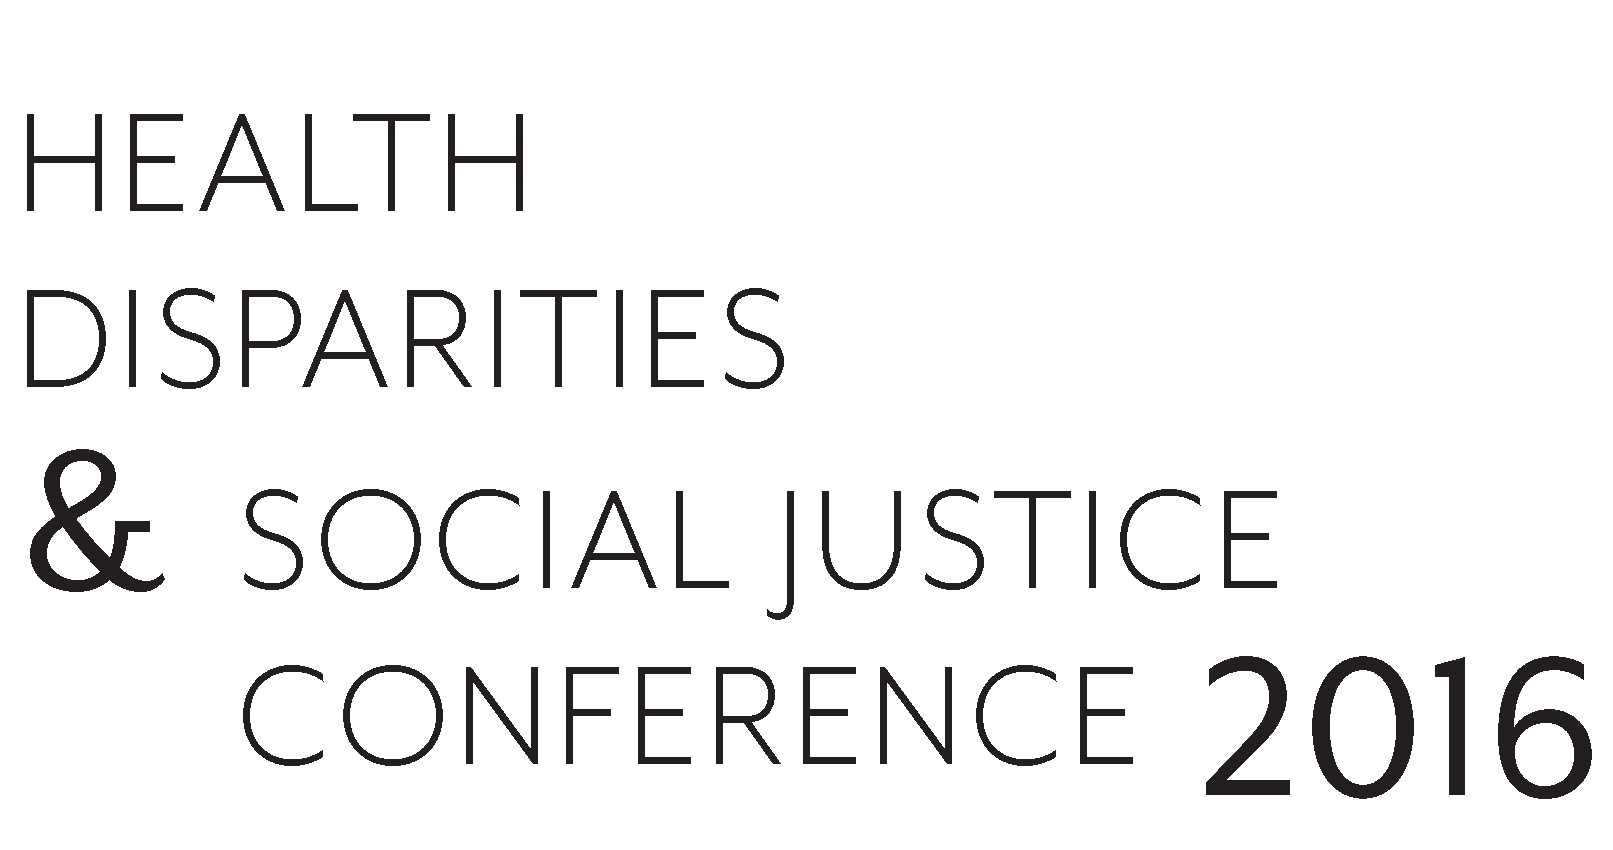 Health Disparities & Social Justice (HDSJ) Conference 2016